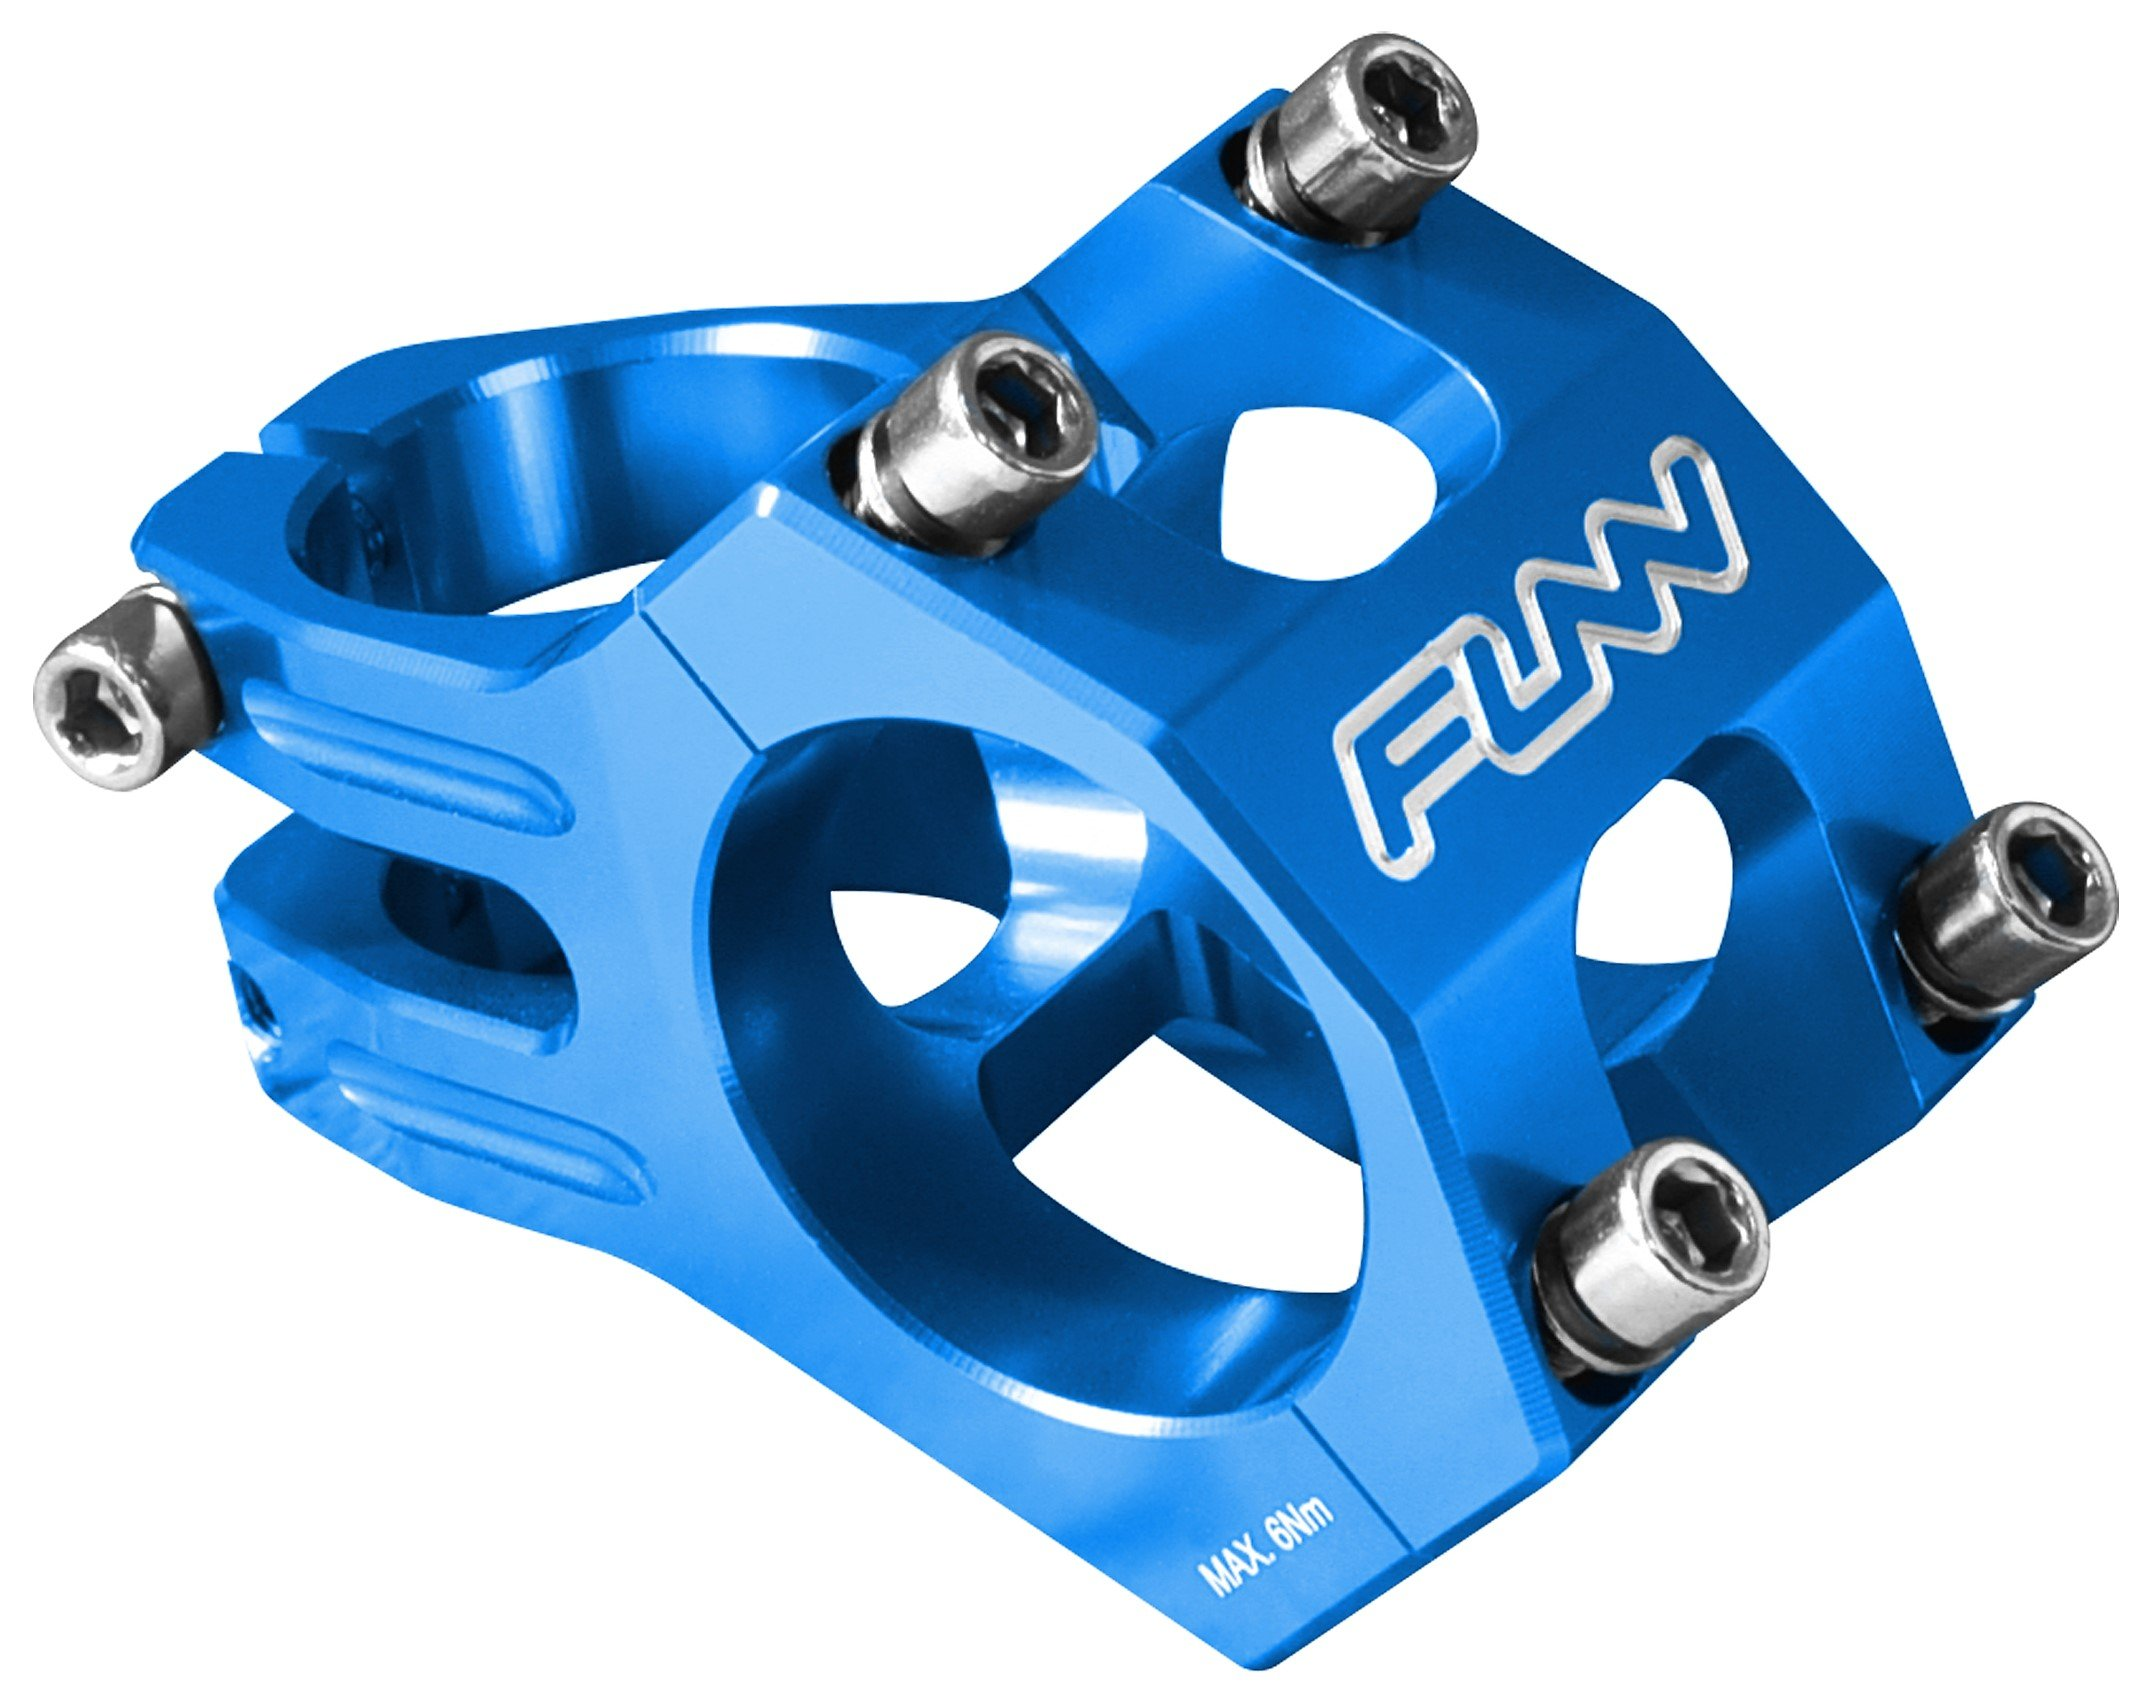 Funn Funnduro MTB Stem, Bar Clamp 31.8mm (Length 35mm, Blue)